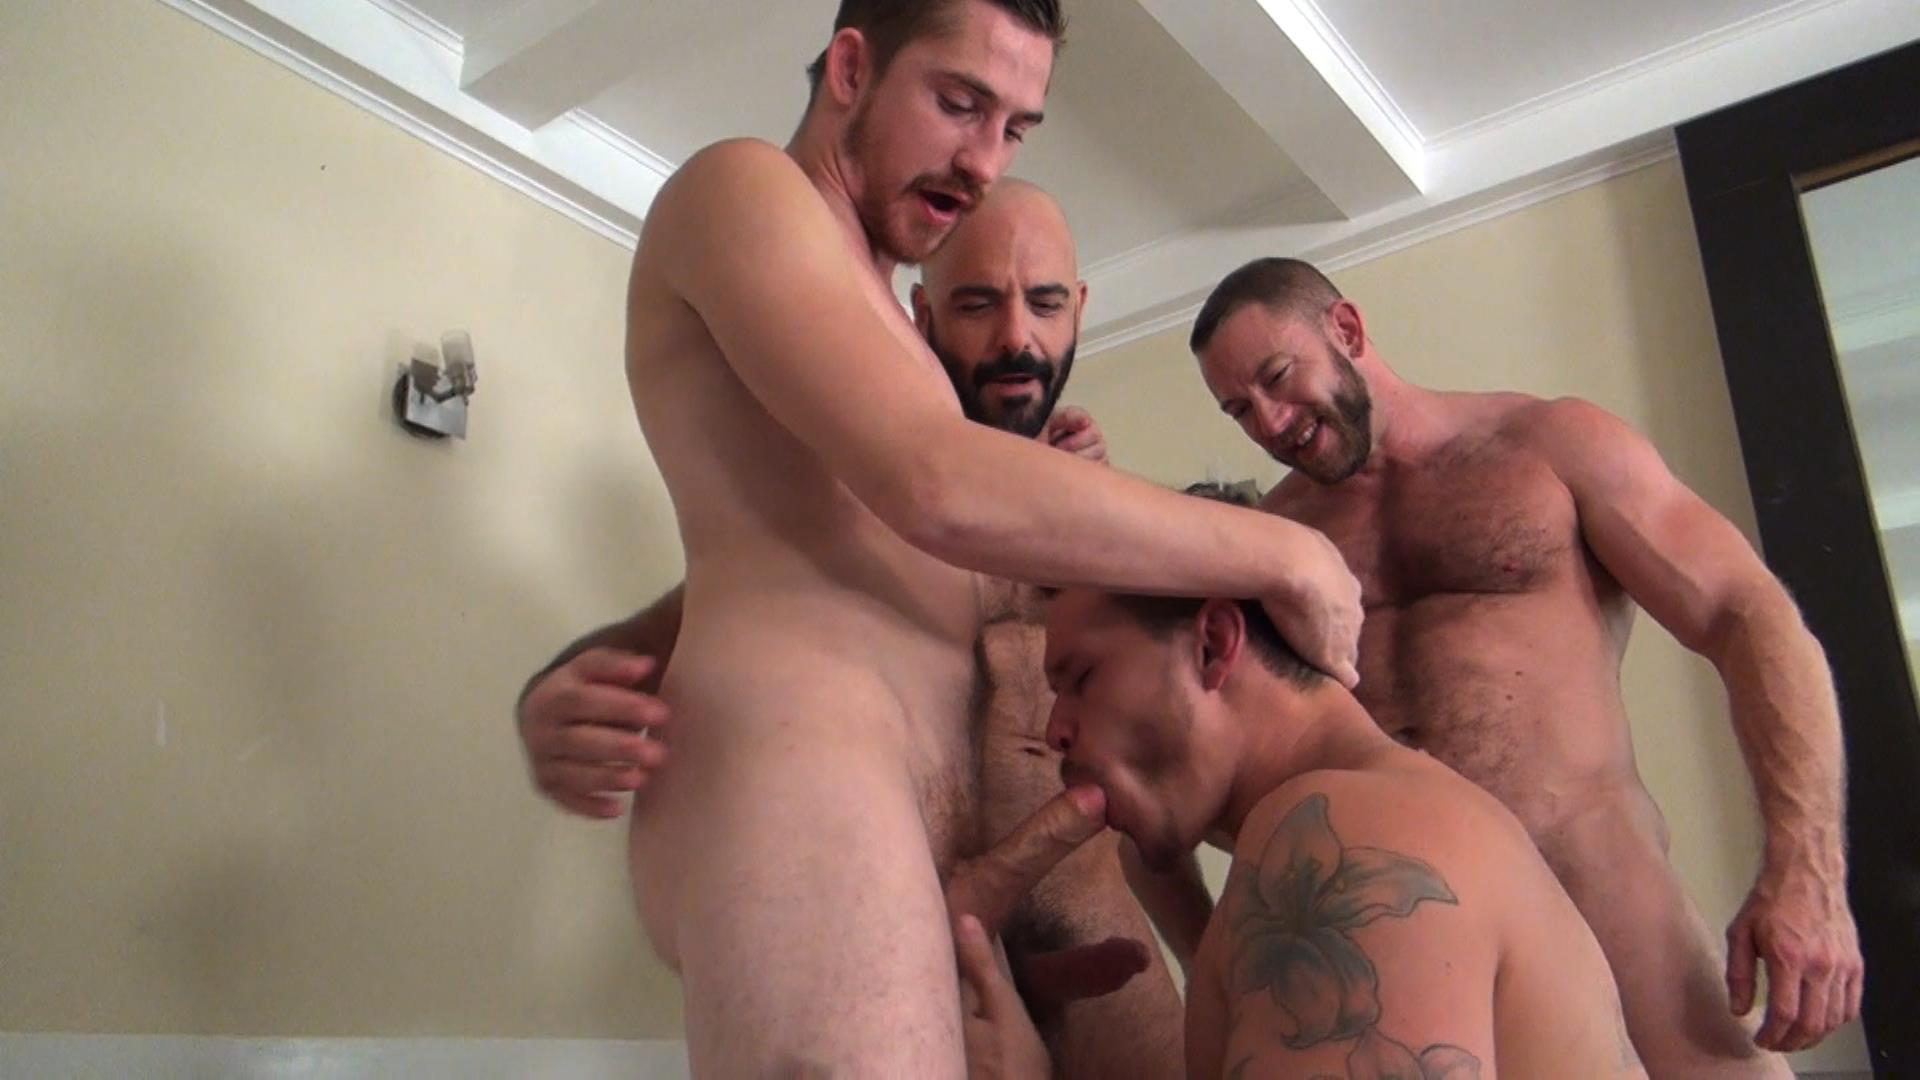 Raw-Fuck-Club-Dayton-OConnor-Tate-Ryder-Shay-Michaels-Adam-Russo-Bareback-Breeding-Amateur-Gay-Porn-4 Tate Ryder Gets Three Hairy Muscle Daddy Bareback Cocks